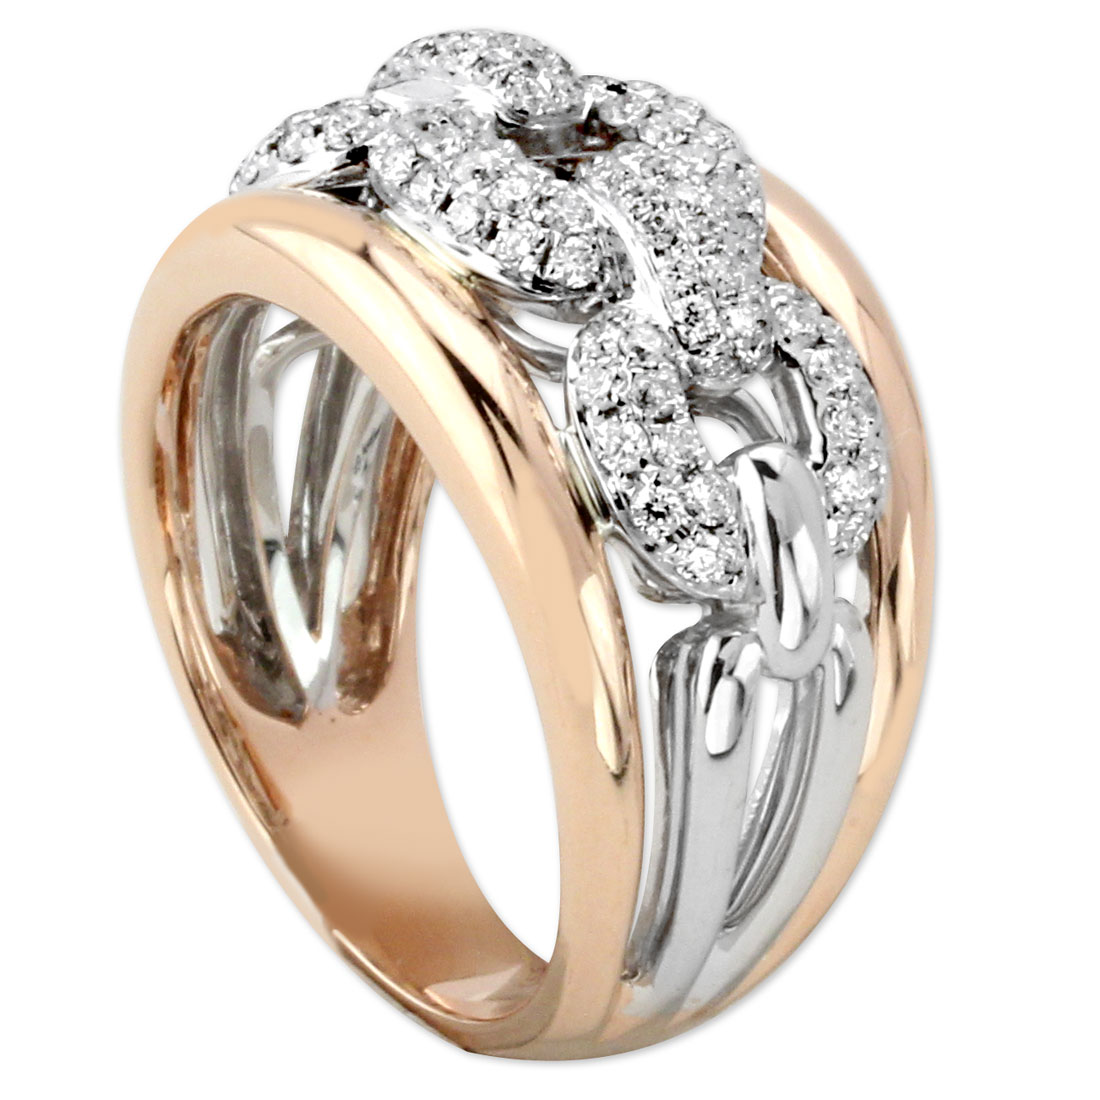 344210-Frederic Sage Bridal Ring